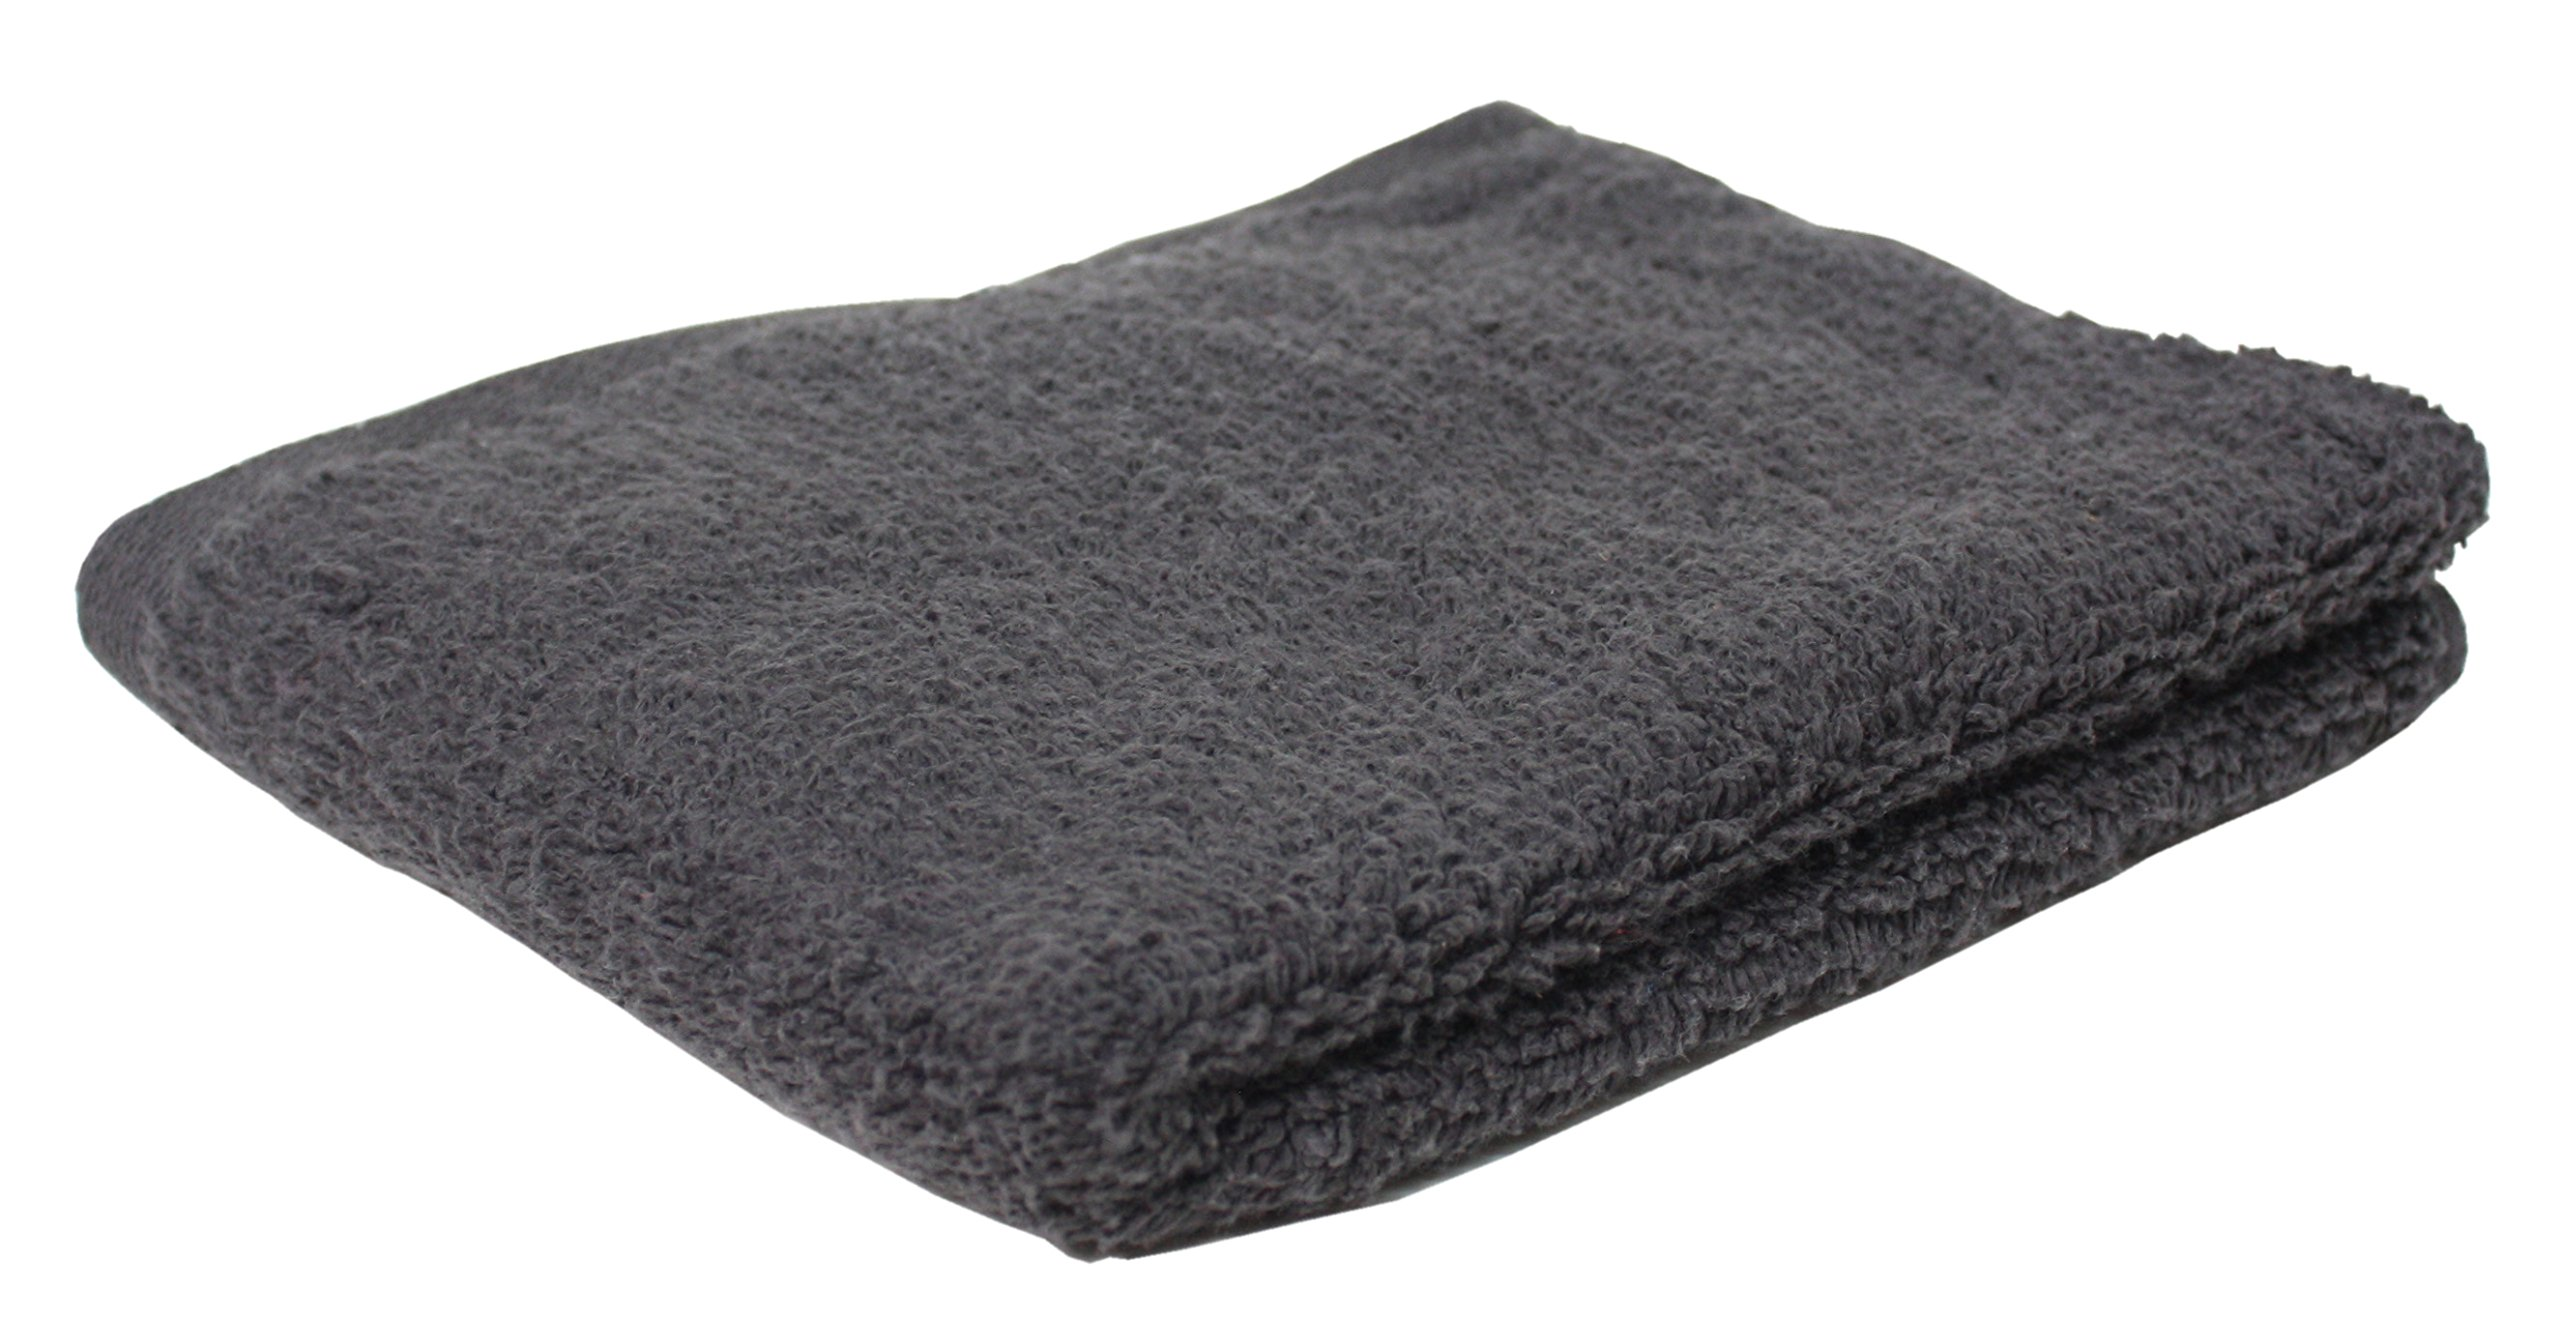 Premium 72-Piece Bulk Pack Cotton Hand Towel Set, 16x27'', Hotel & Spa Quality, Super Soft and Ultra Absorbent for Commercial Business-Dark Gray